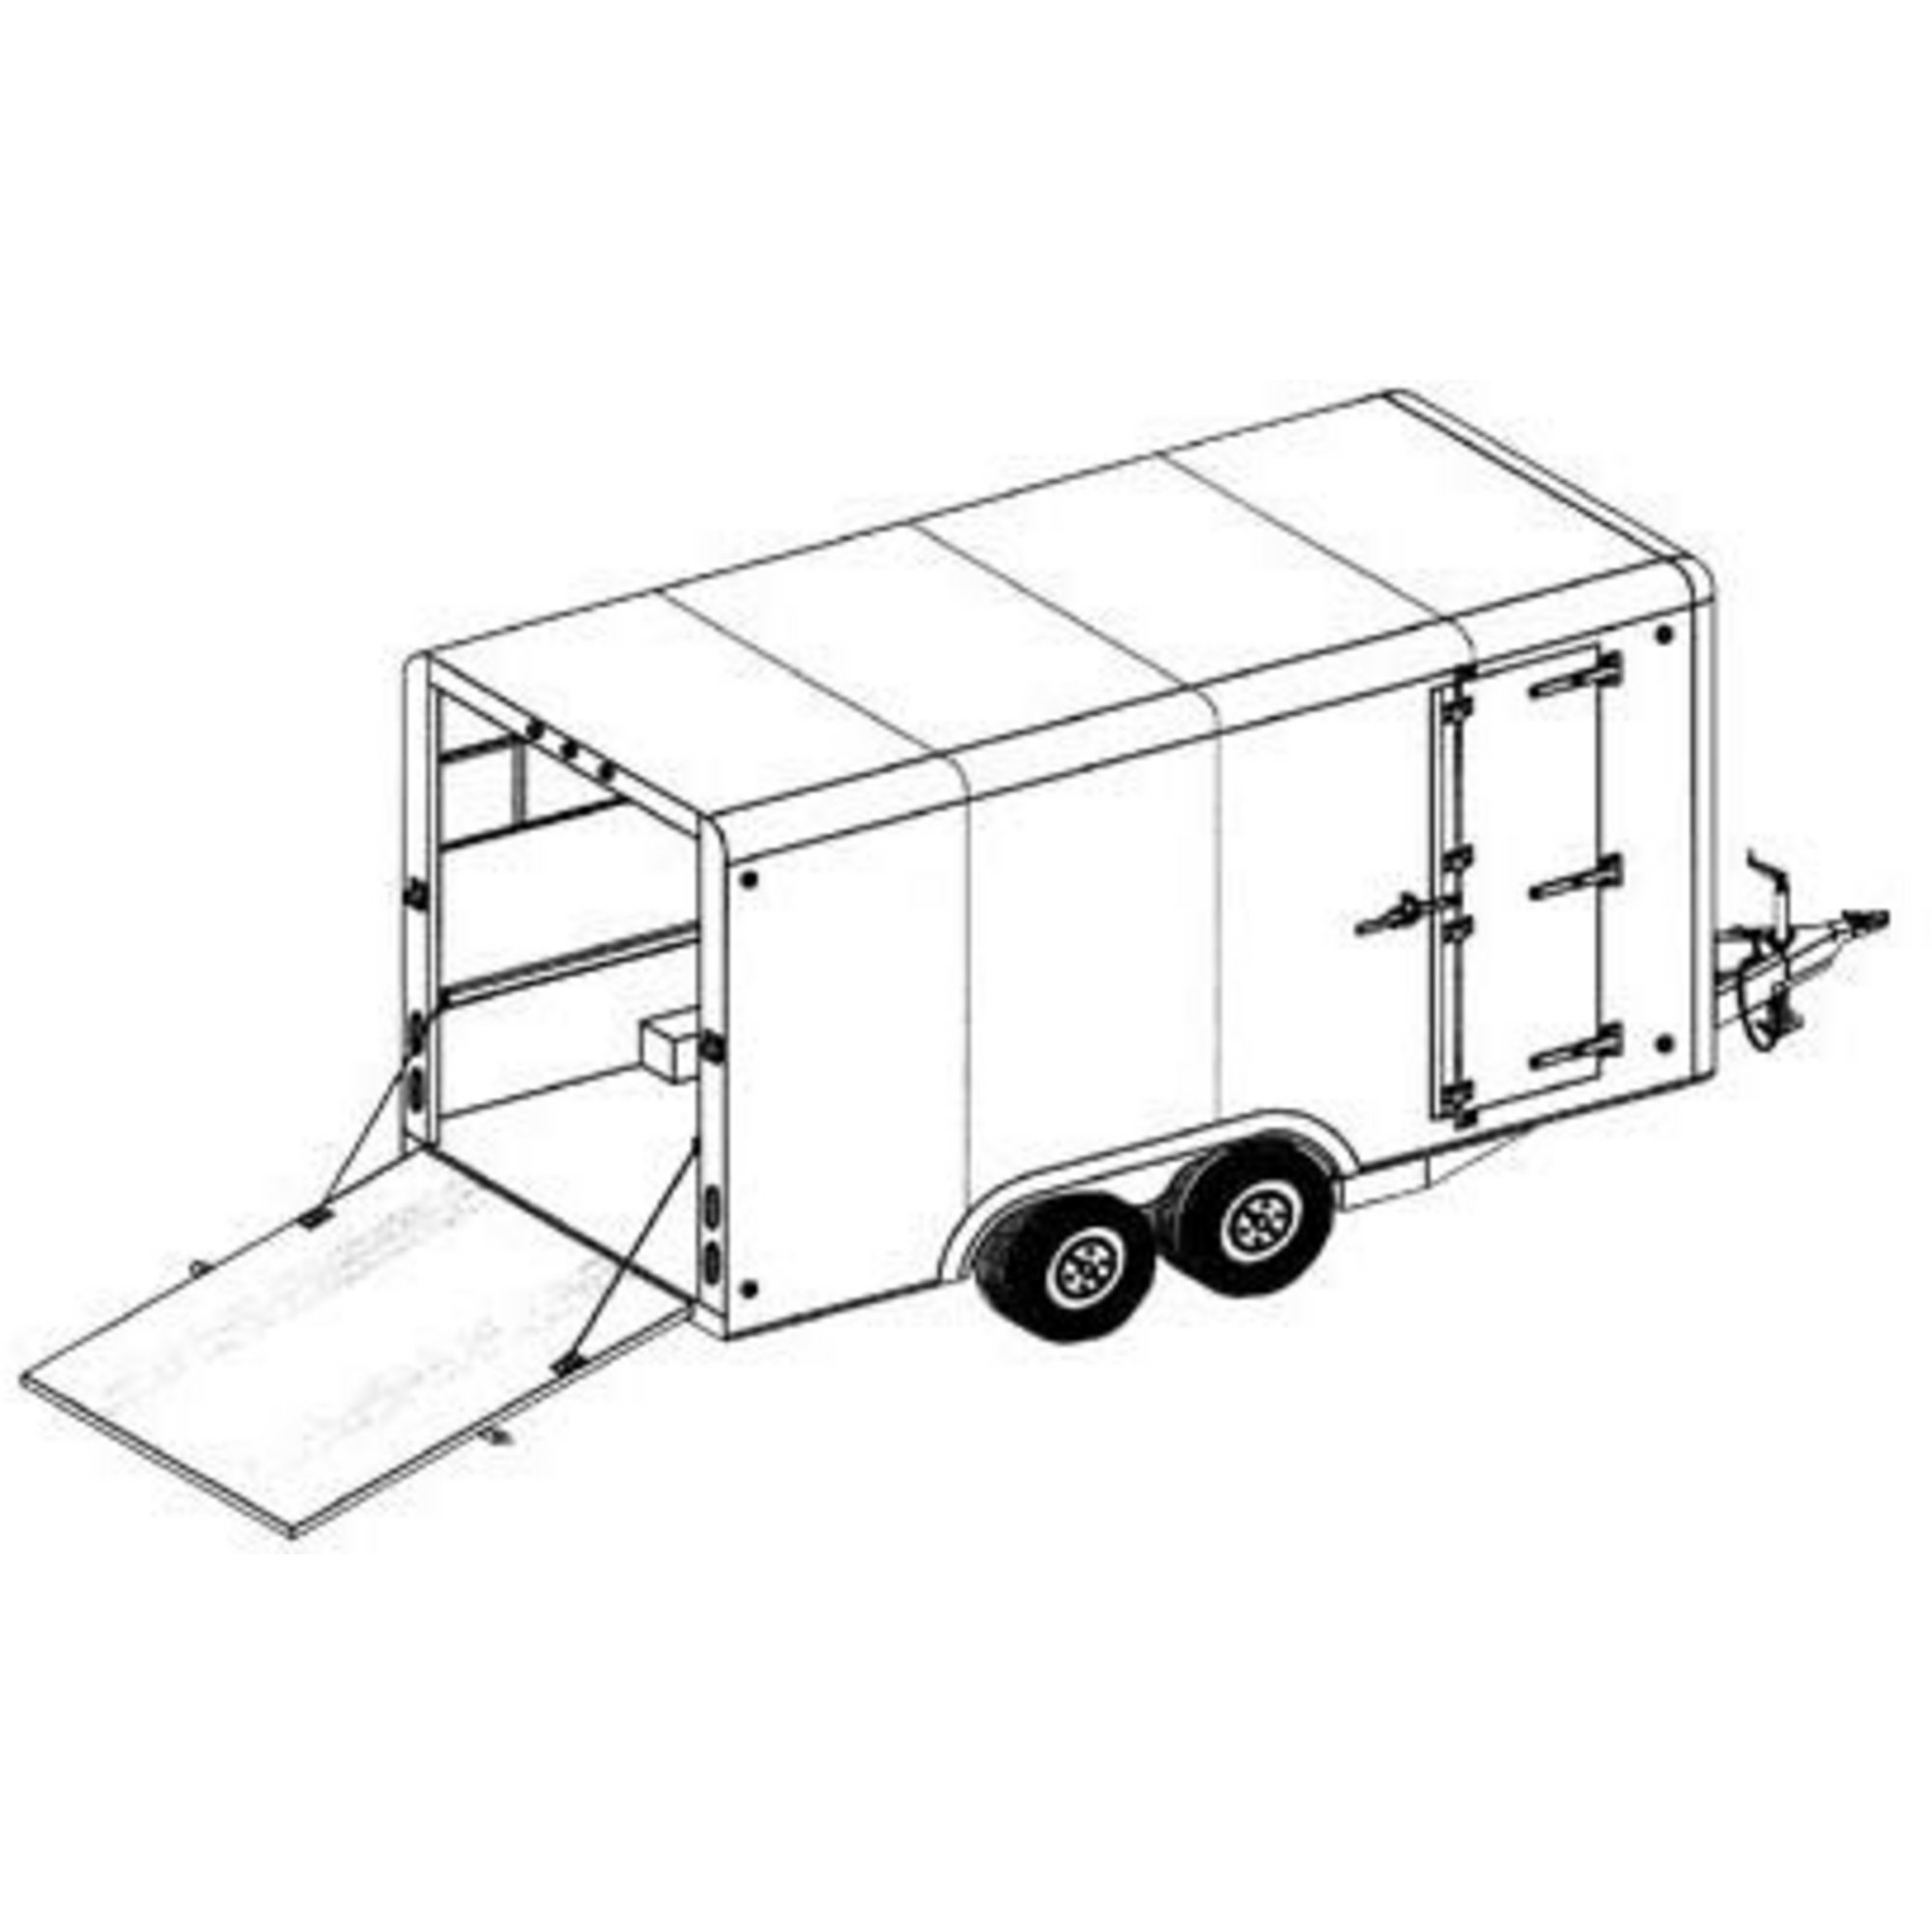 2000x2000 Covered Cargo Tandem Axle Trailer Blueprints Northern Tool +